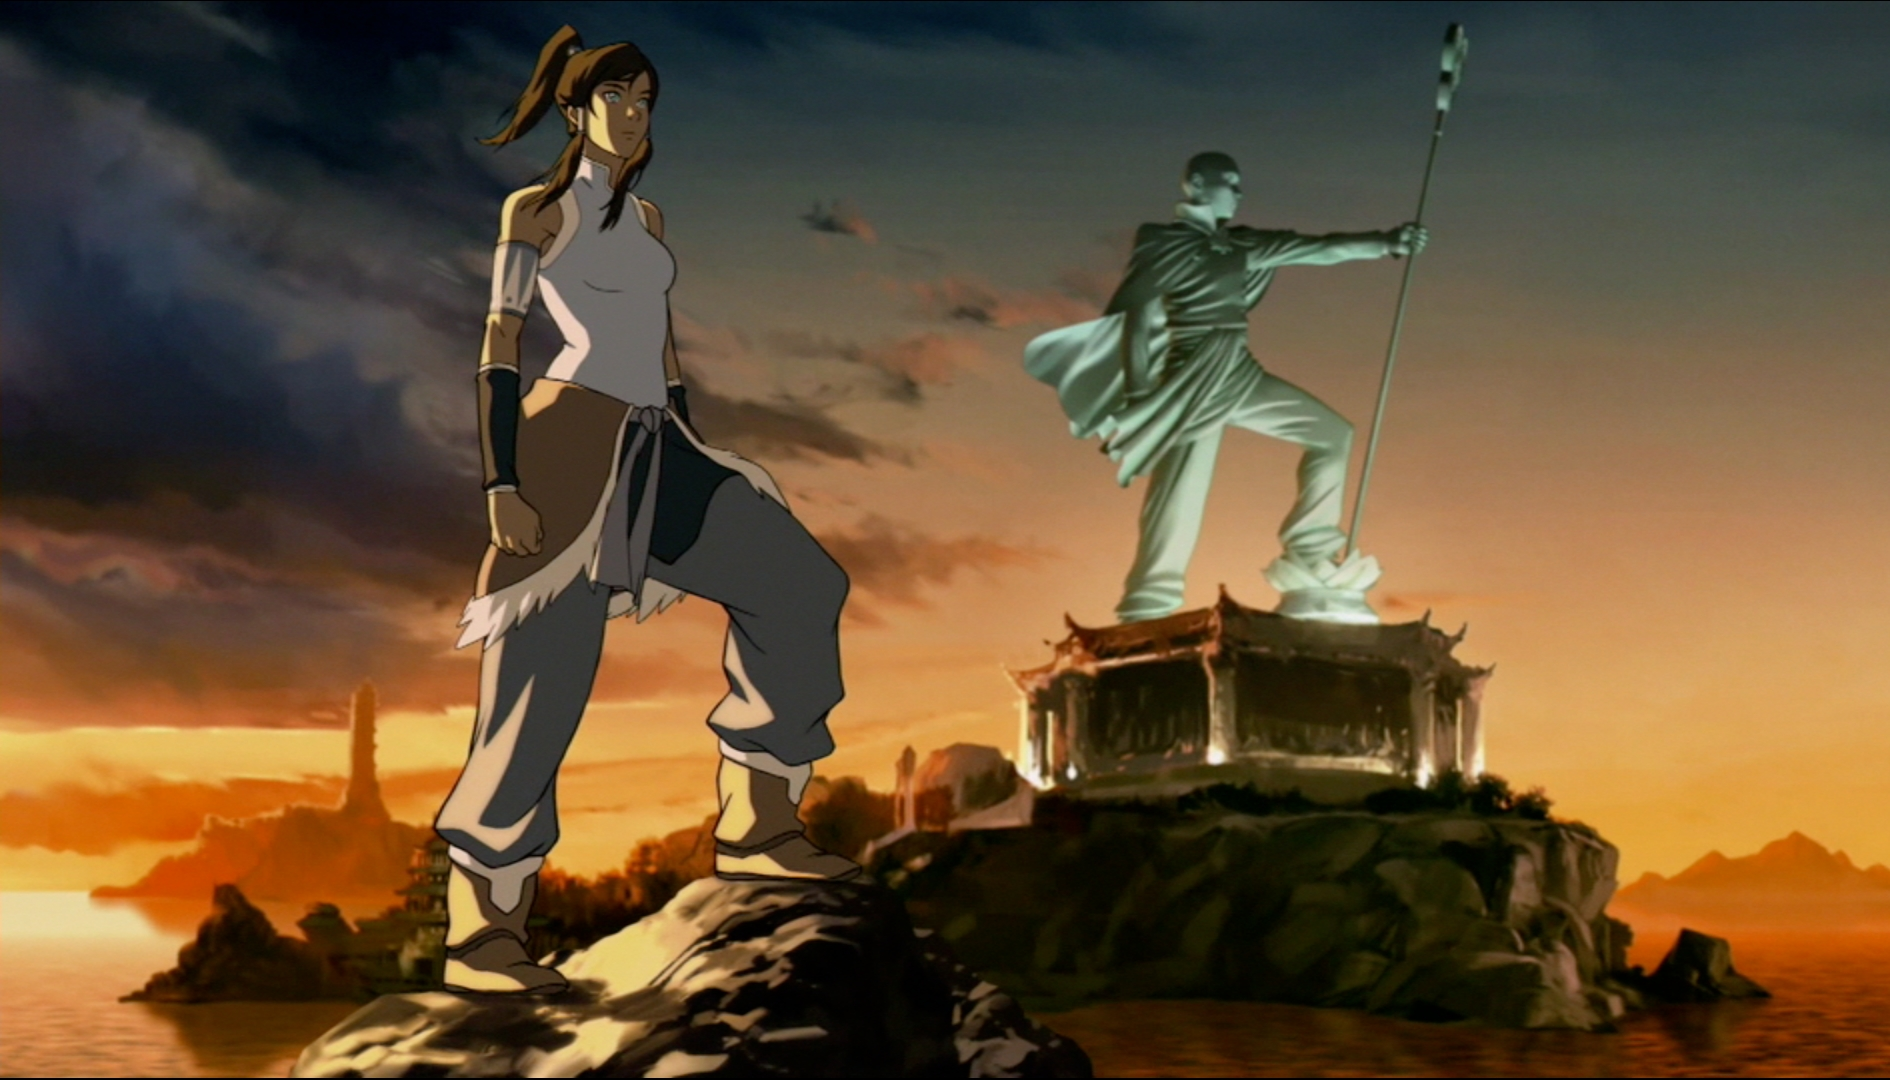 legend-korra-series-finale-season-4-watch-episode